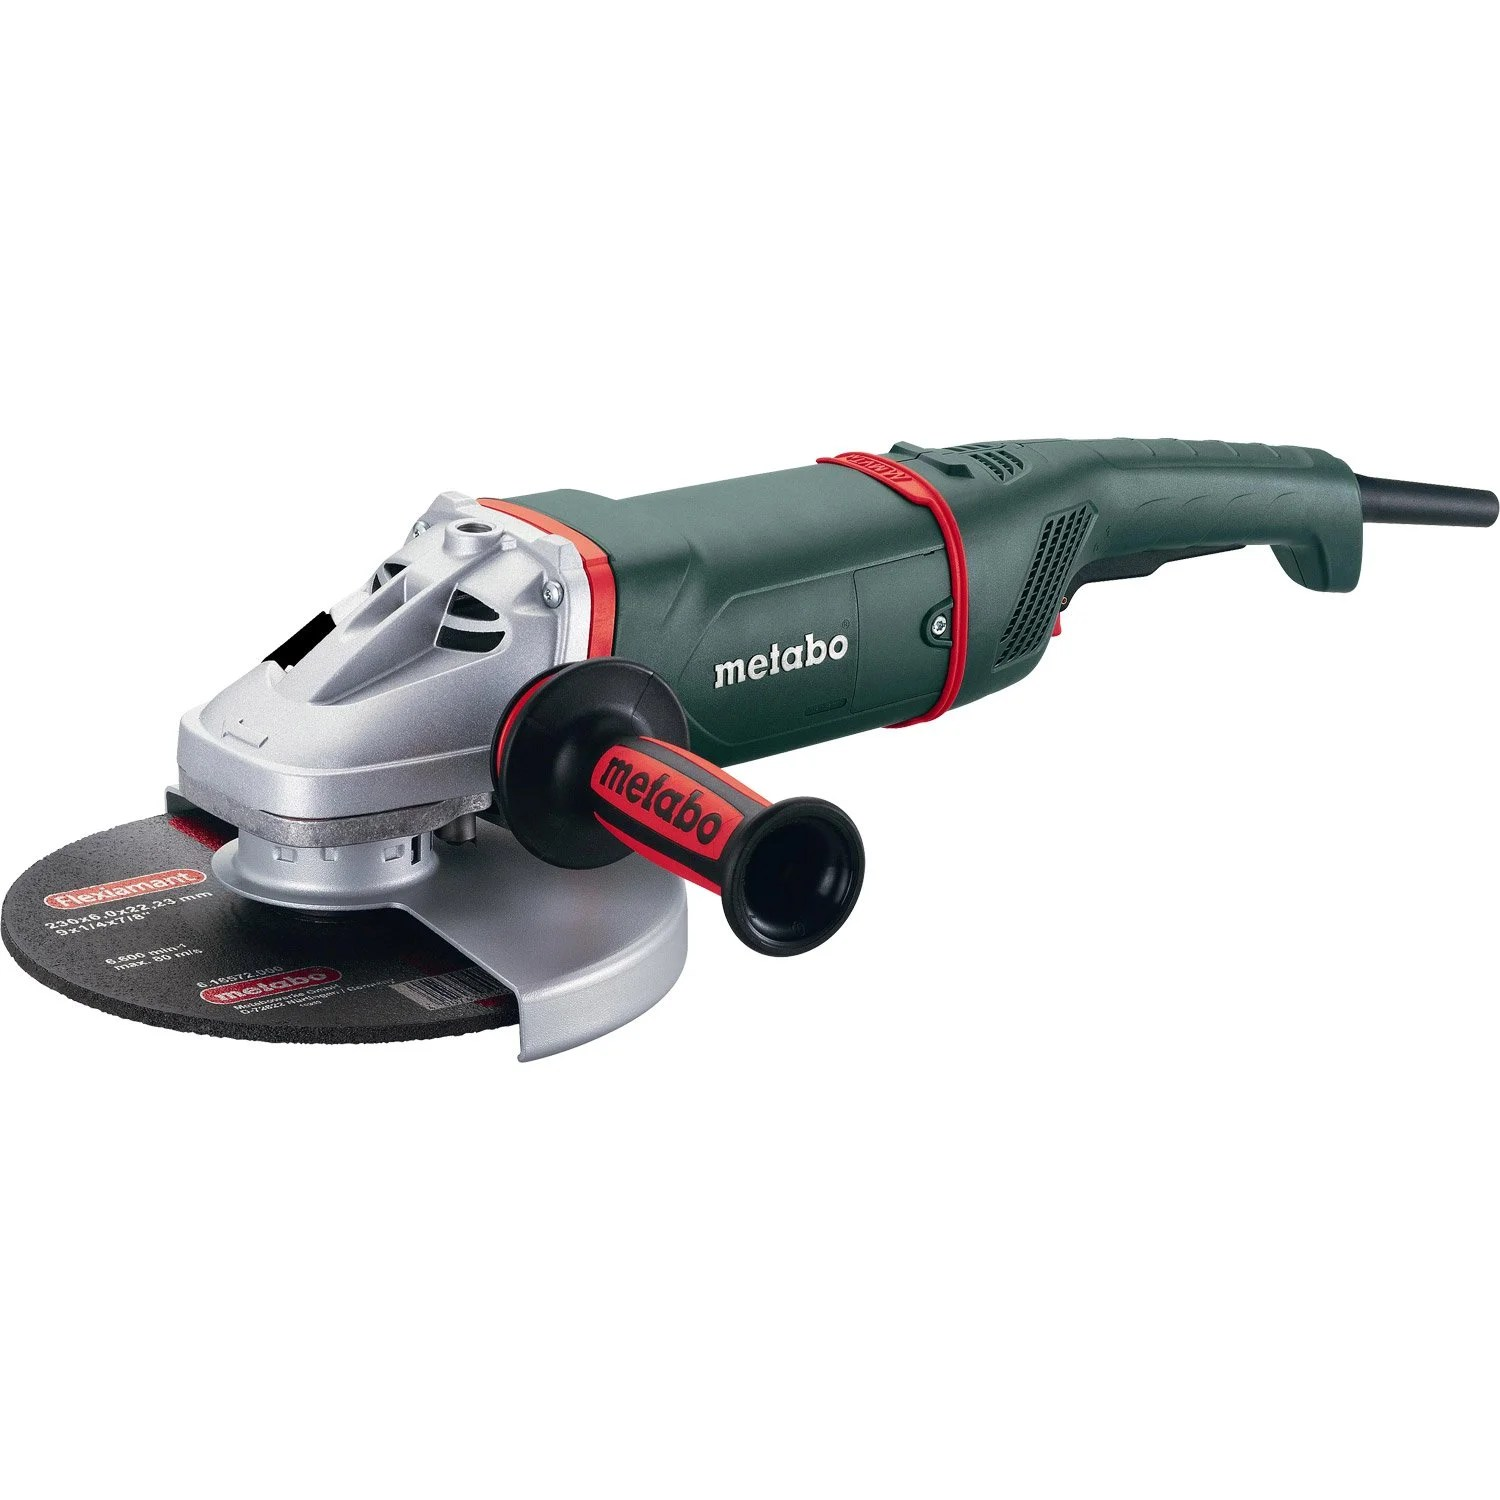 Metabo Leroy Merlin Meuleuse 230 Mm Metabo Wx 22 230 2200 W Leroy Merlin